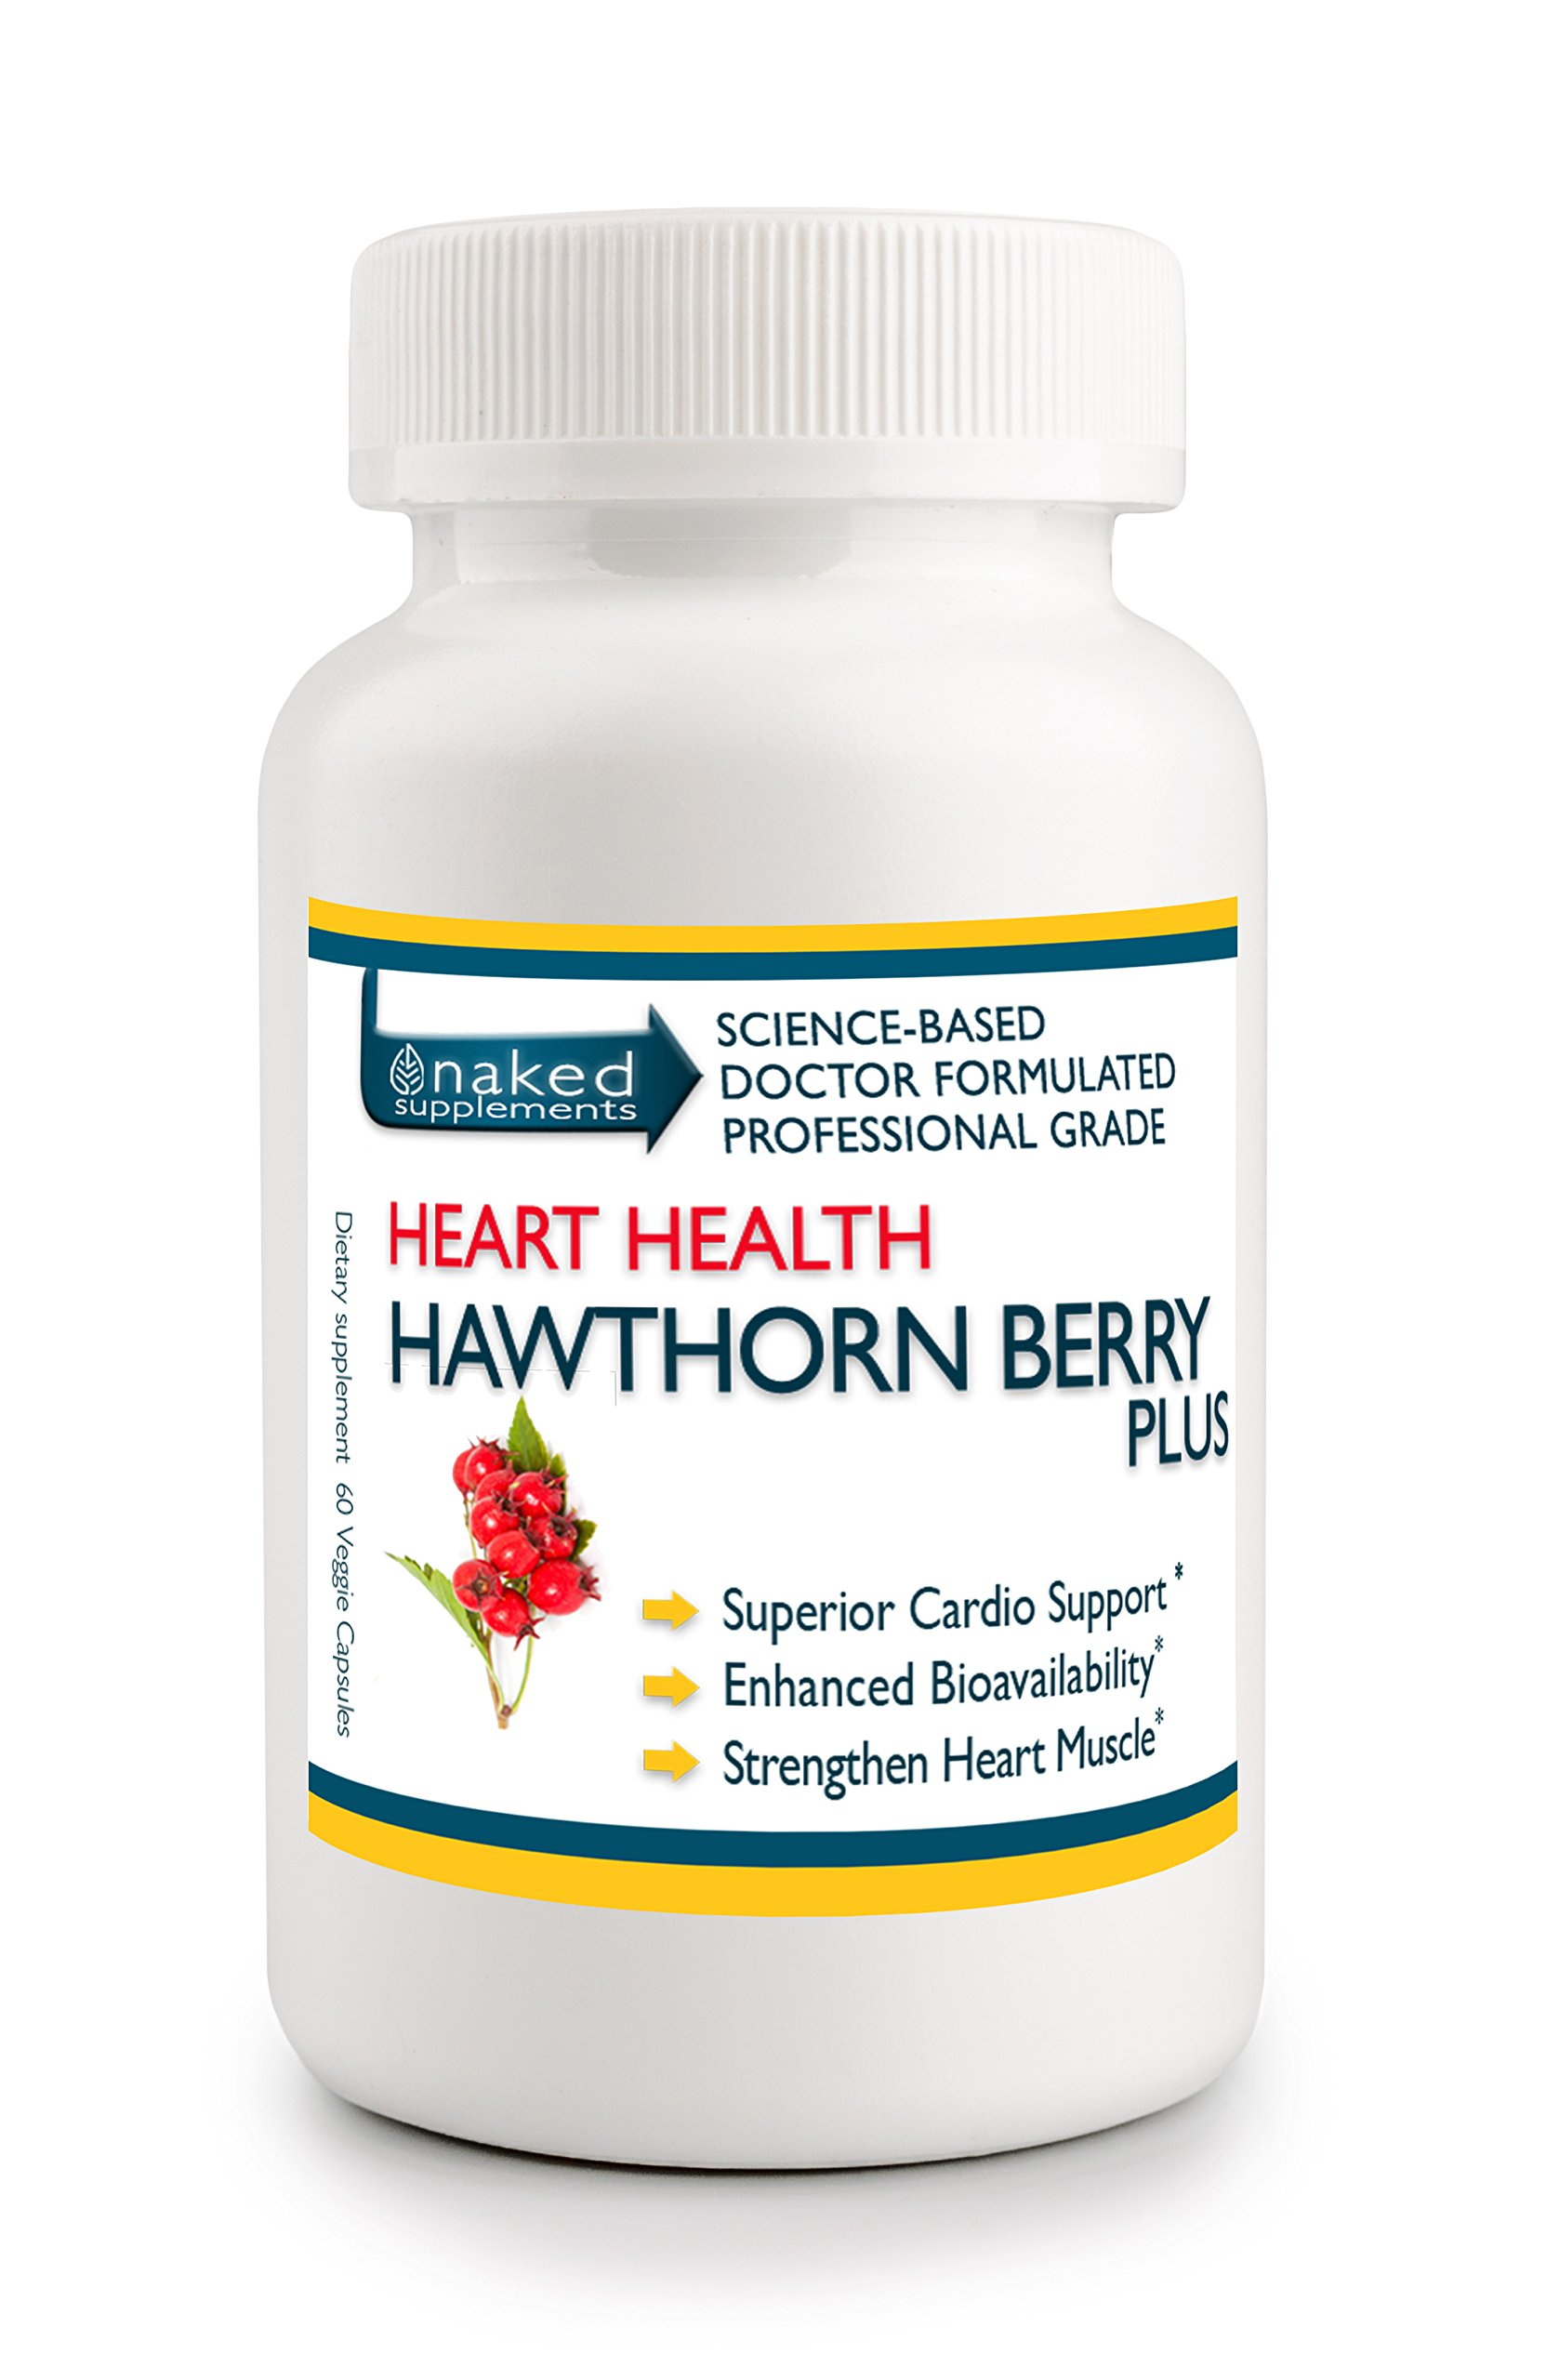 Hawthorn Berry PLUS - Professional Strength Heart Health Vegan Capsules - Enhanced Absorption & Bioavailability - Assists Blood Pressure, Angina, and more... (1)